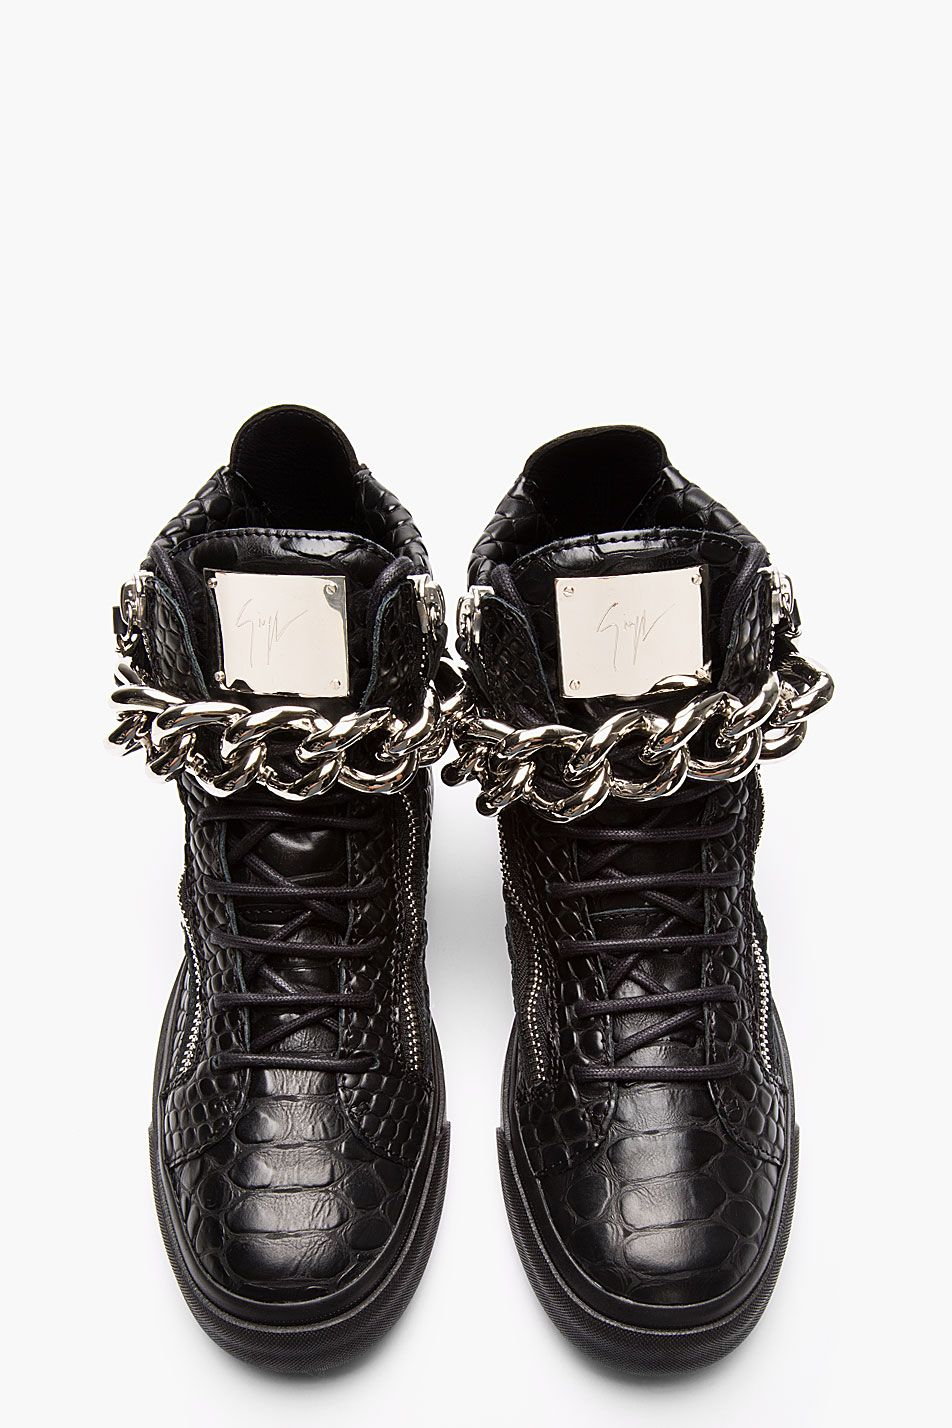 GIUSEPPE ZANOTTI Negro Leather Sneakers Croc Embossed Chain Strap Sneakers Leather 979c41